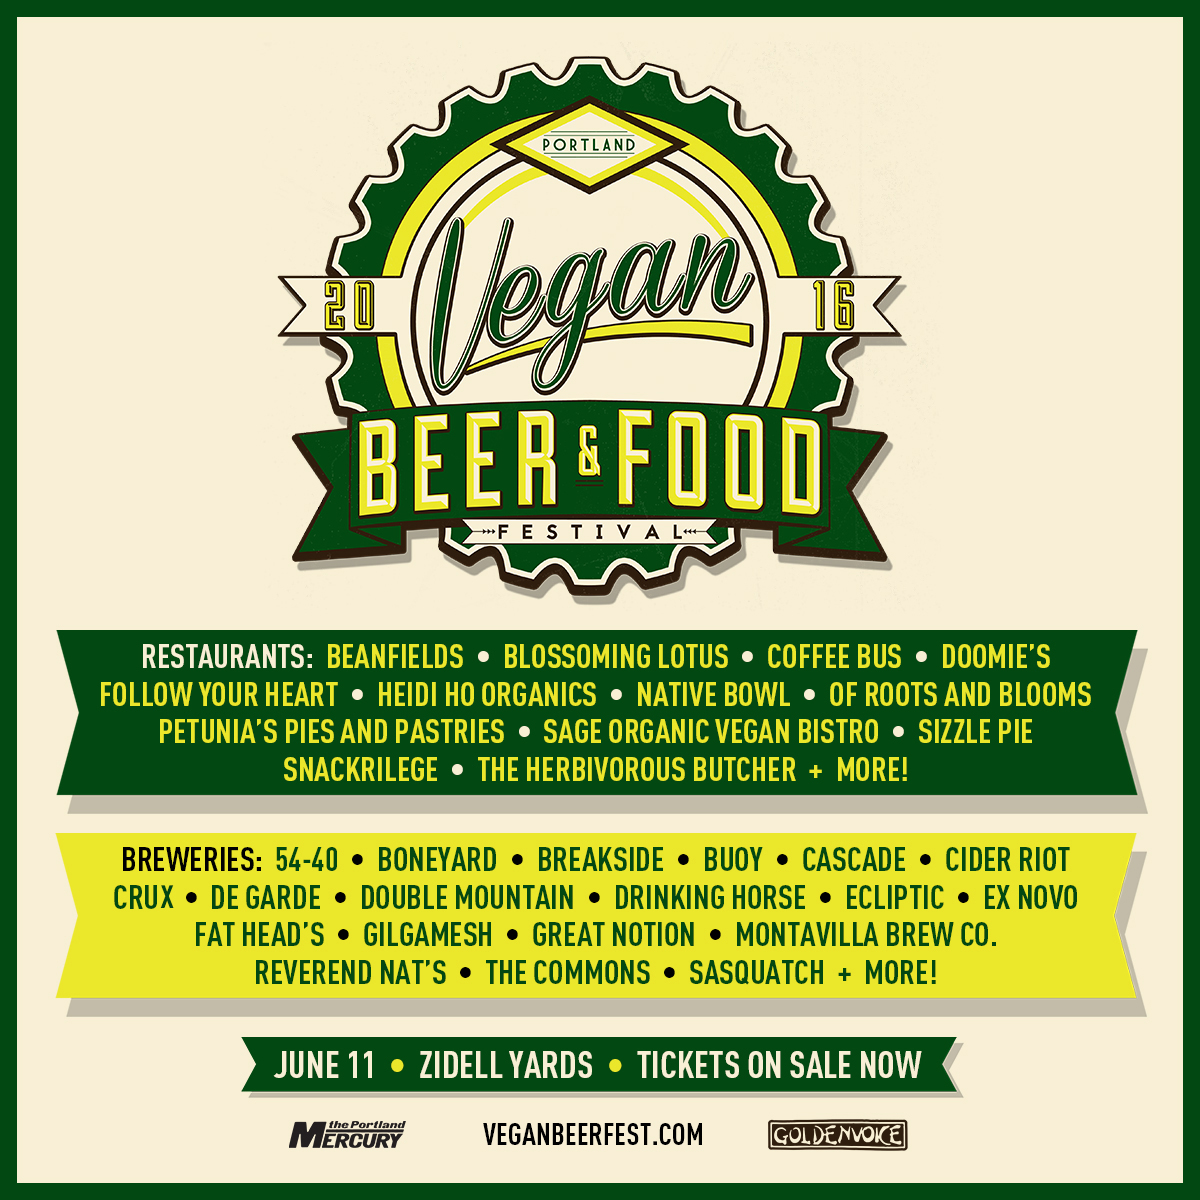 2016 Portland Vegan Beer & Food Festival